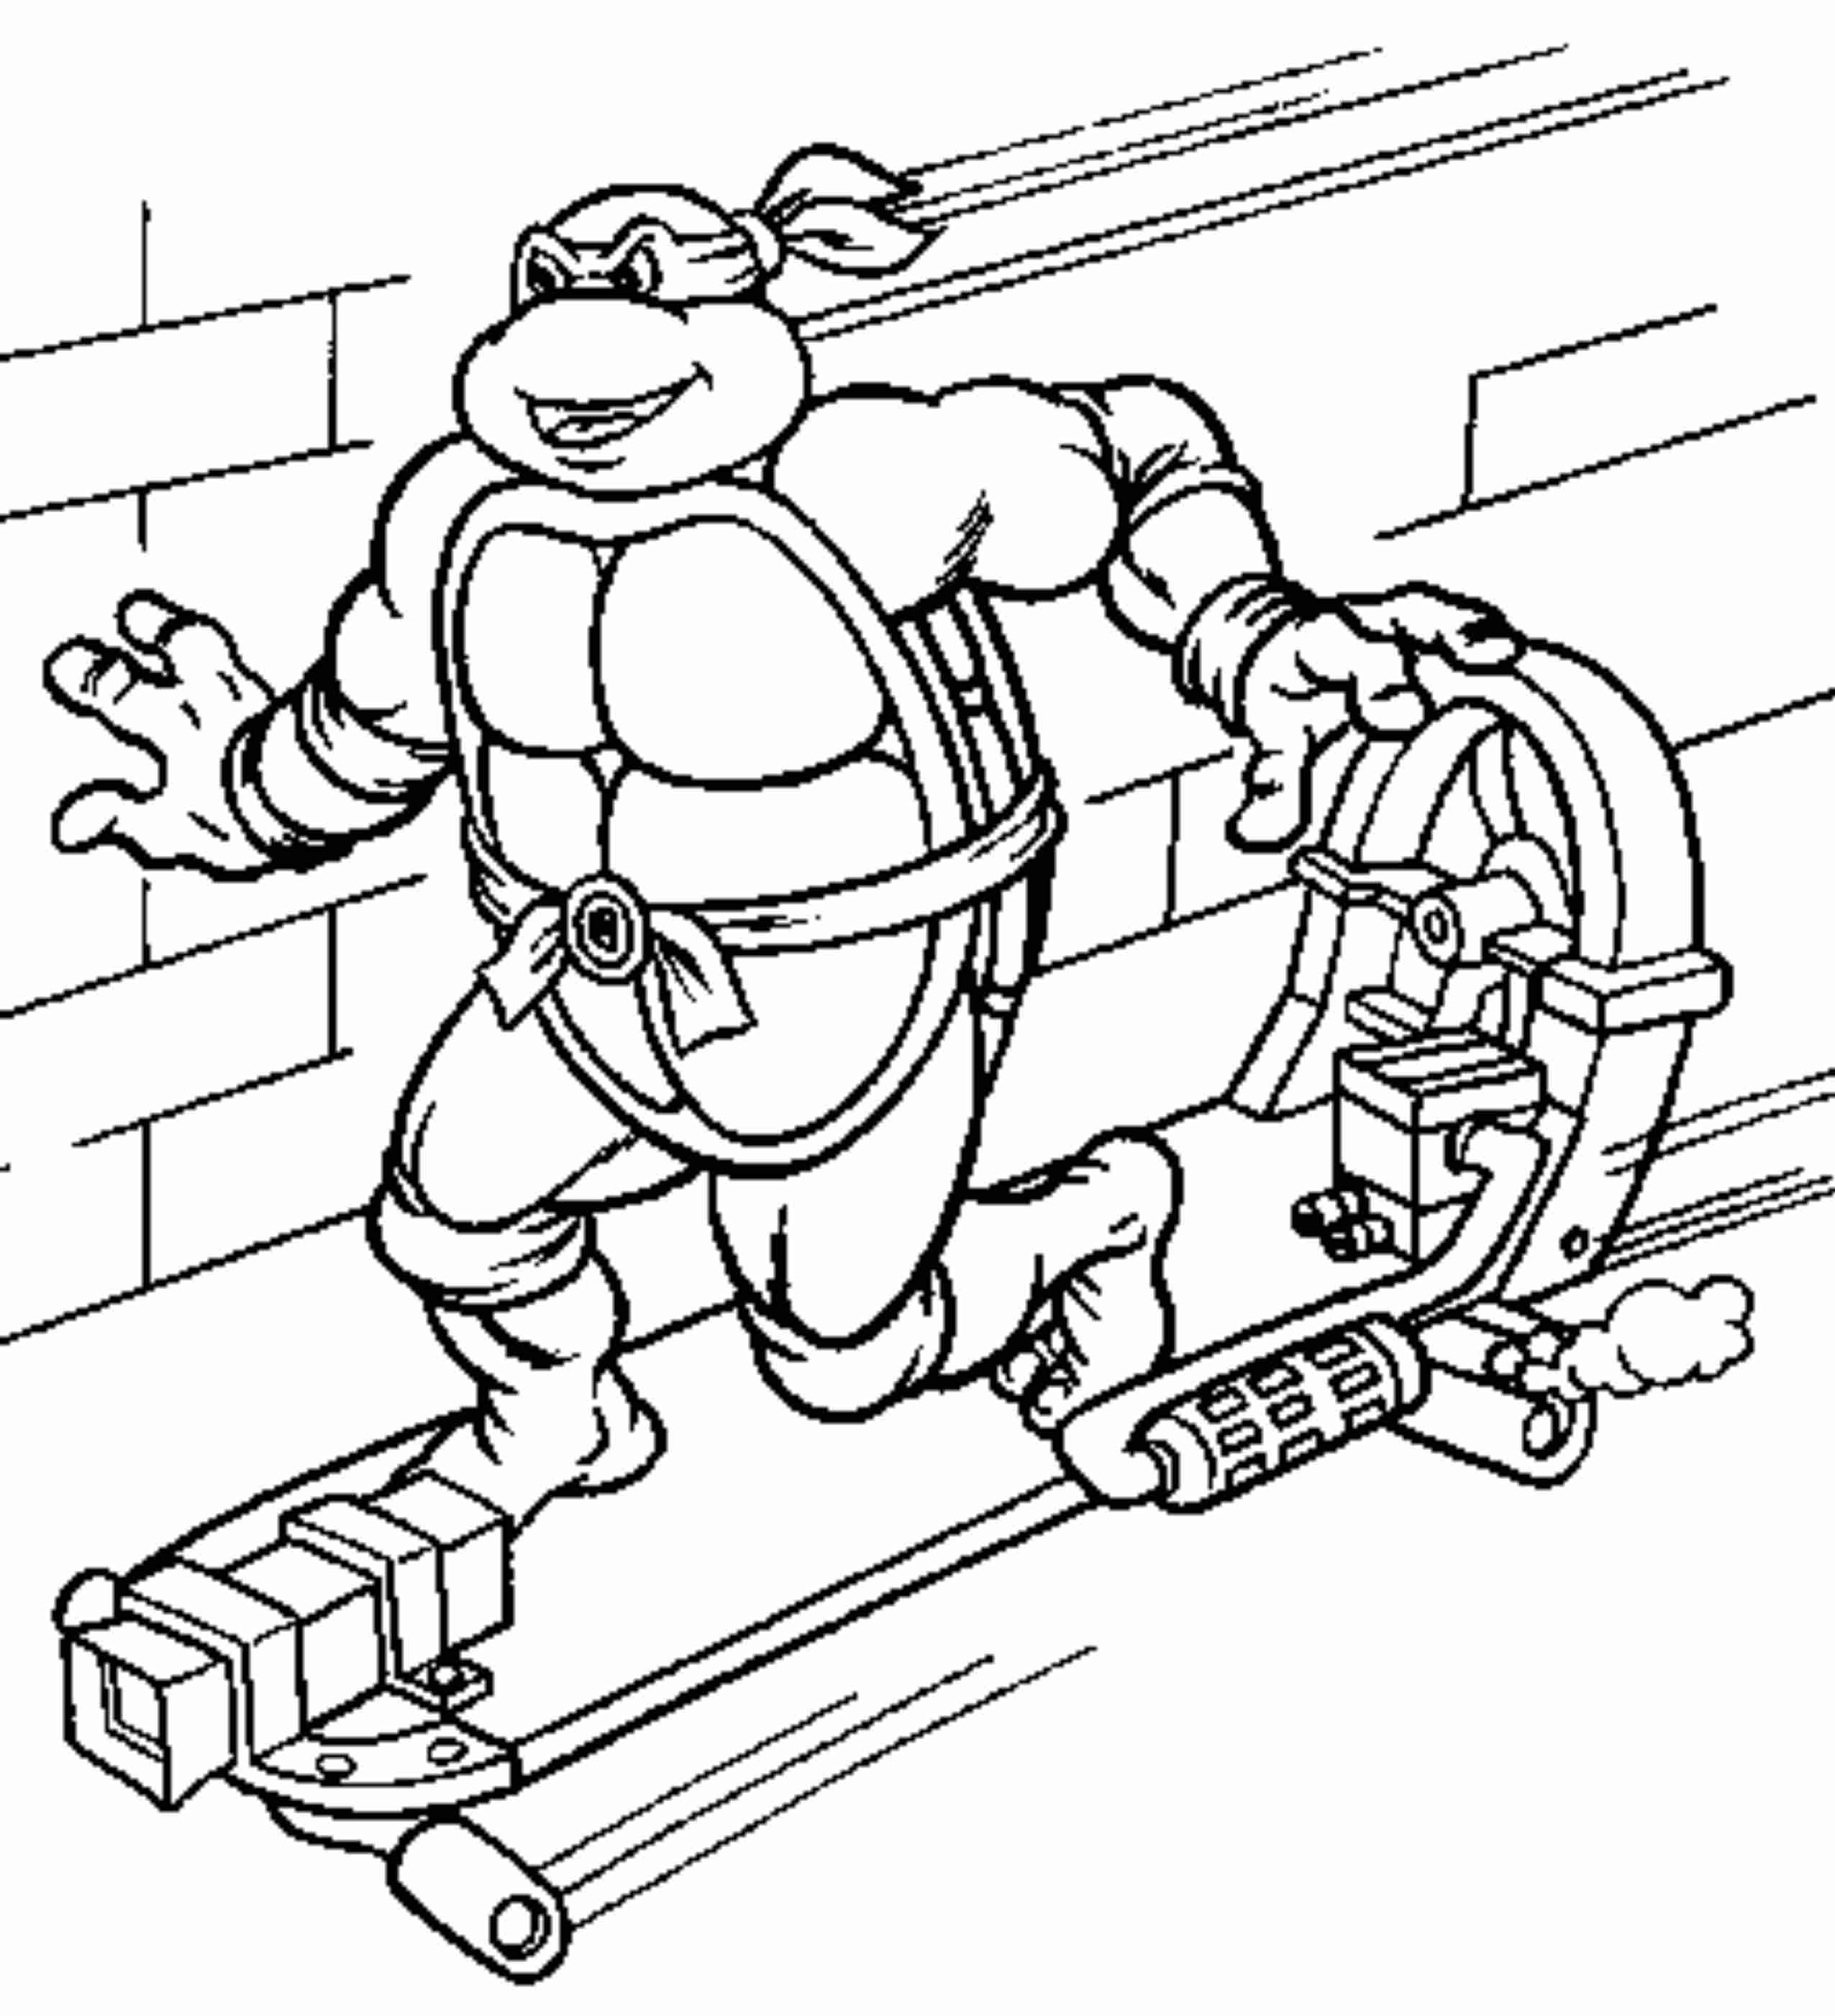 print download the attractive ninja coloring pages for kids activity